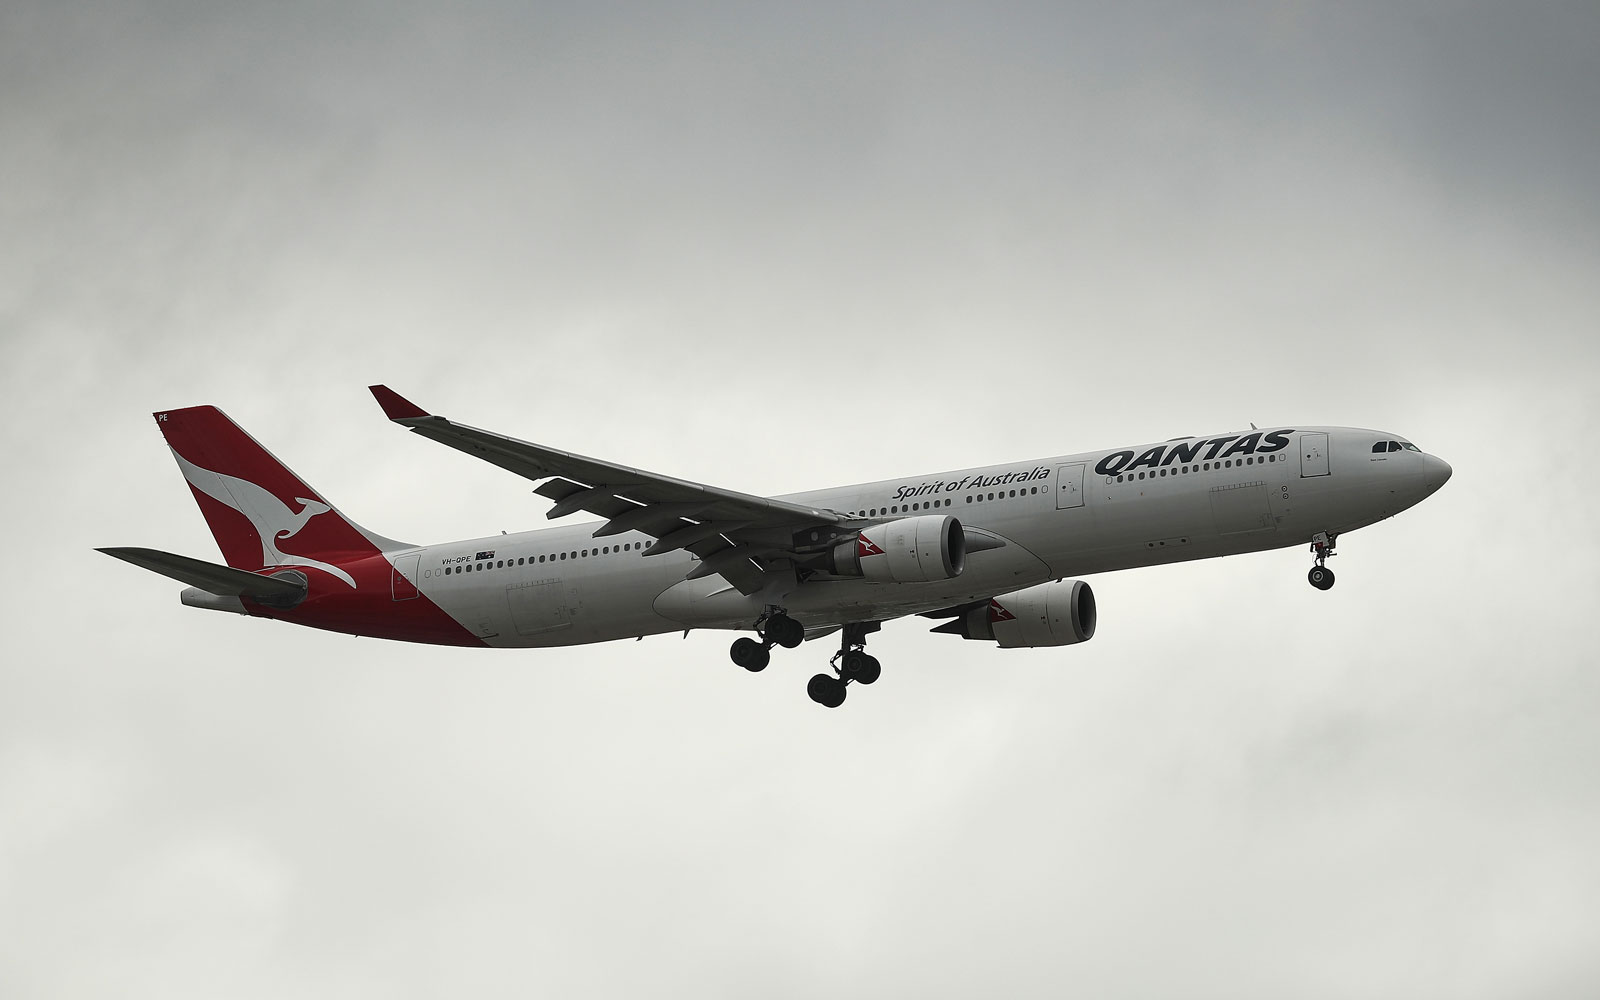 General Views of Qantas Aircraft Ahead of Half-Year Results